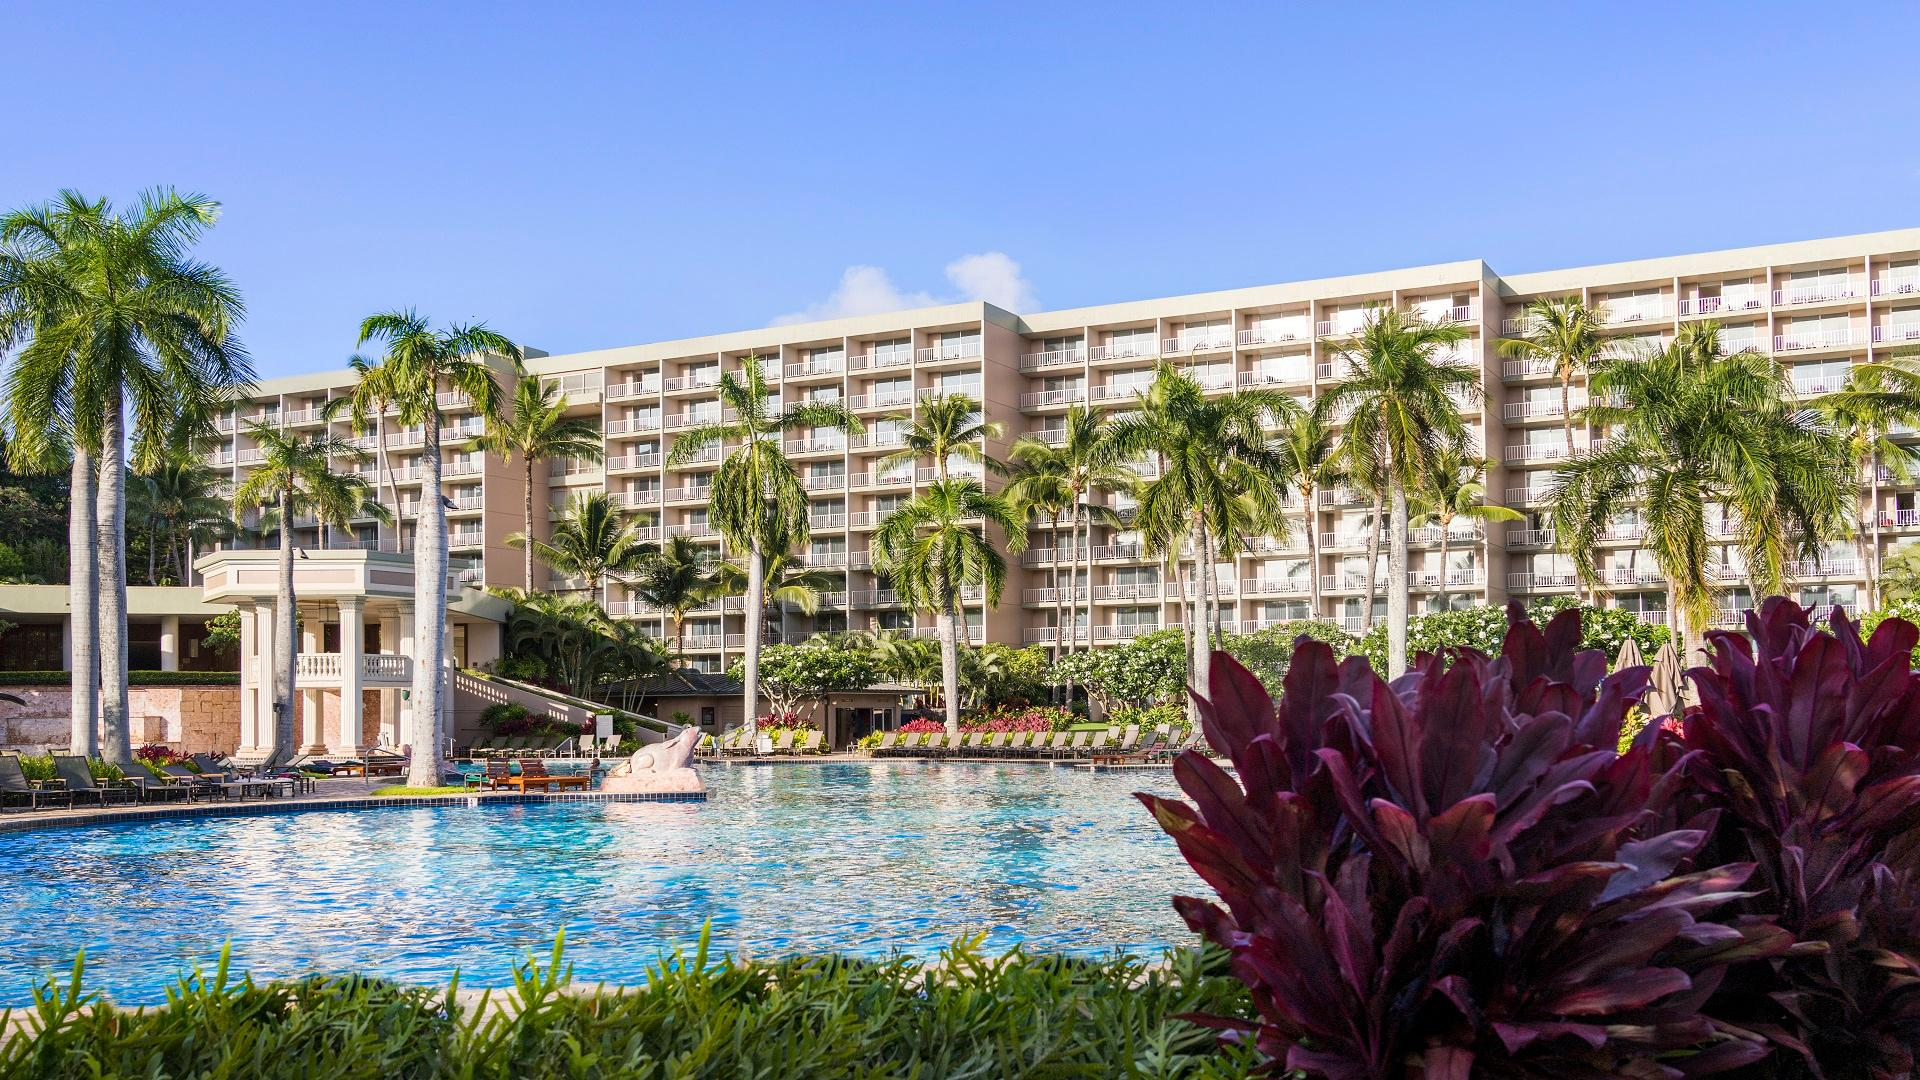 Explore the magnificent Kaua'i Marriott Resort grounds, located Oceanside in Hawaii's scenic Kalapaki Bay, perfect for island weddings or family vacations.